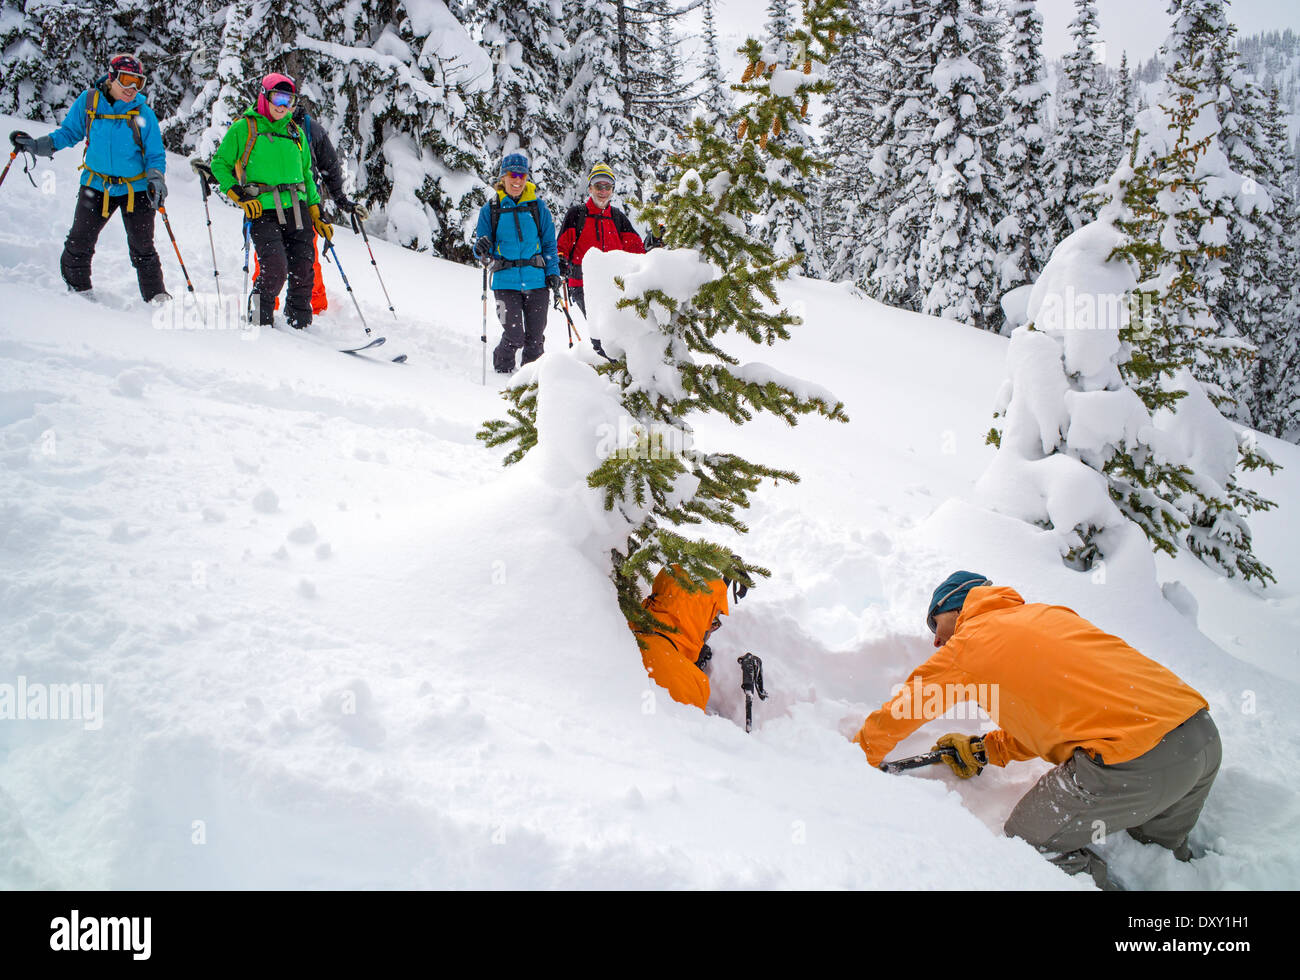 Professional back country ski mountain guides demonstrating a rescue technique for skier trapped in snow tree well - Stock Image